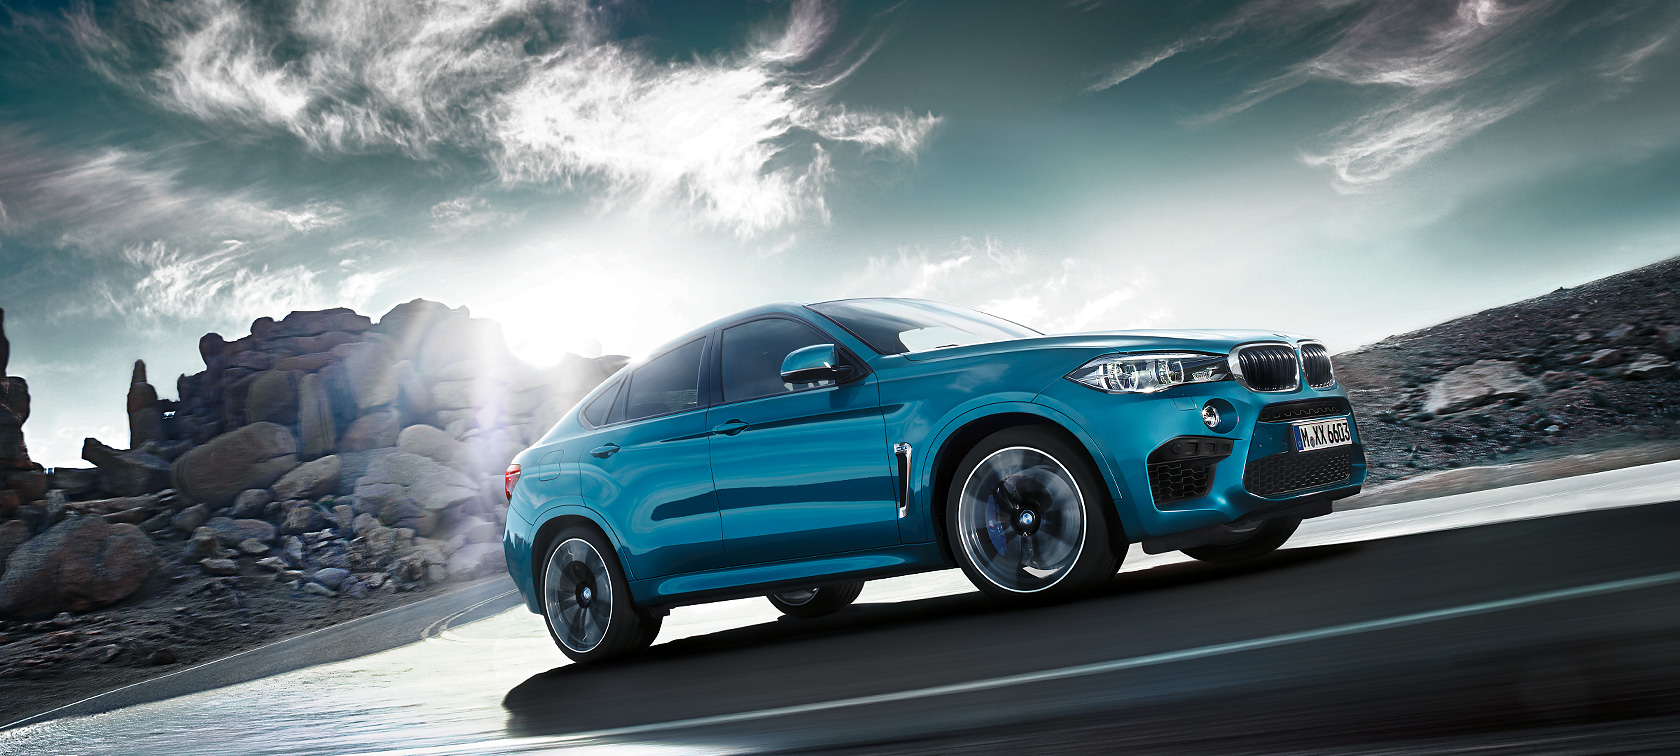 BMW M Series X6M: matallic blue car is driving up the mountain with sunlight.